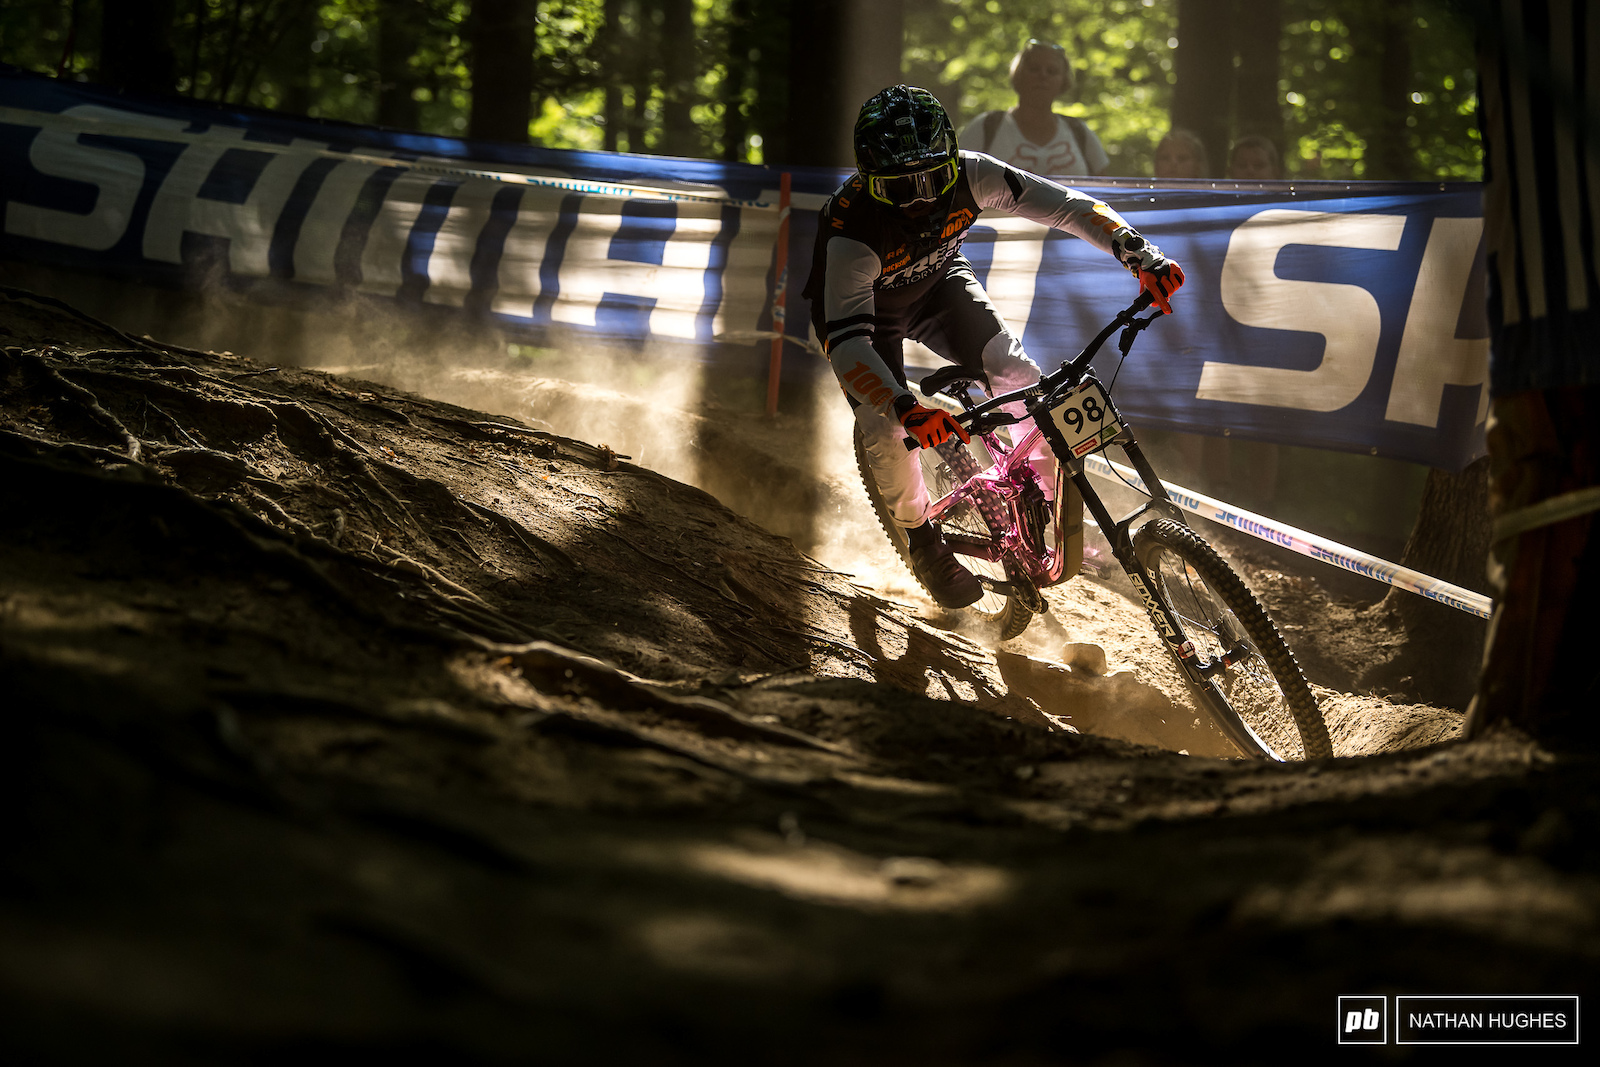 Back from his broken arm in Leogang Chuck Harrison illuminating his surroundings with some chrome pink.